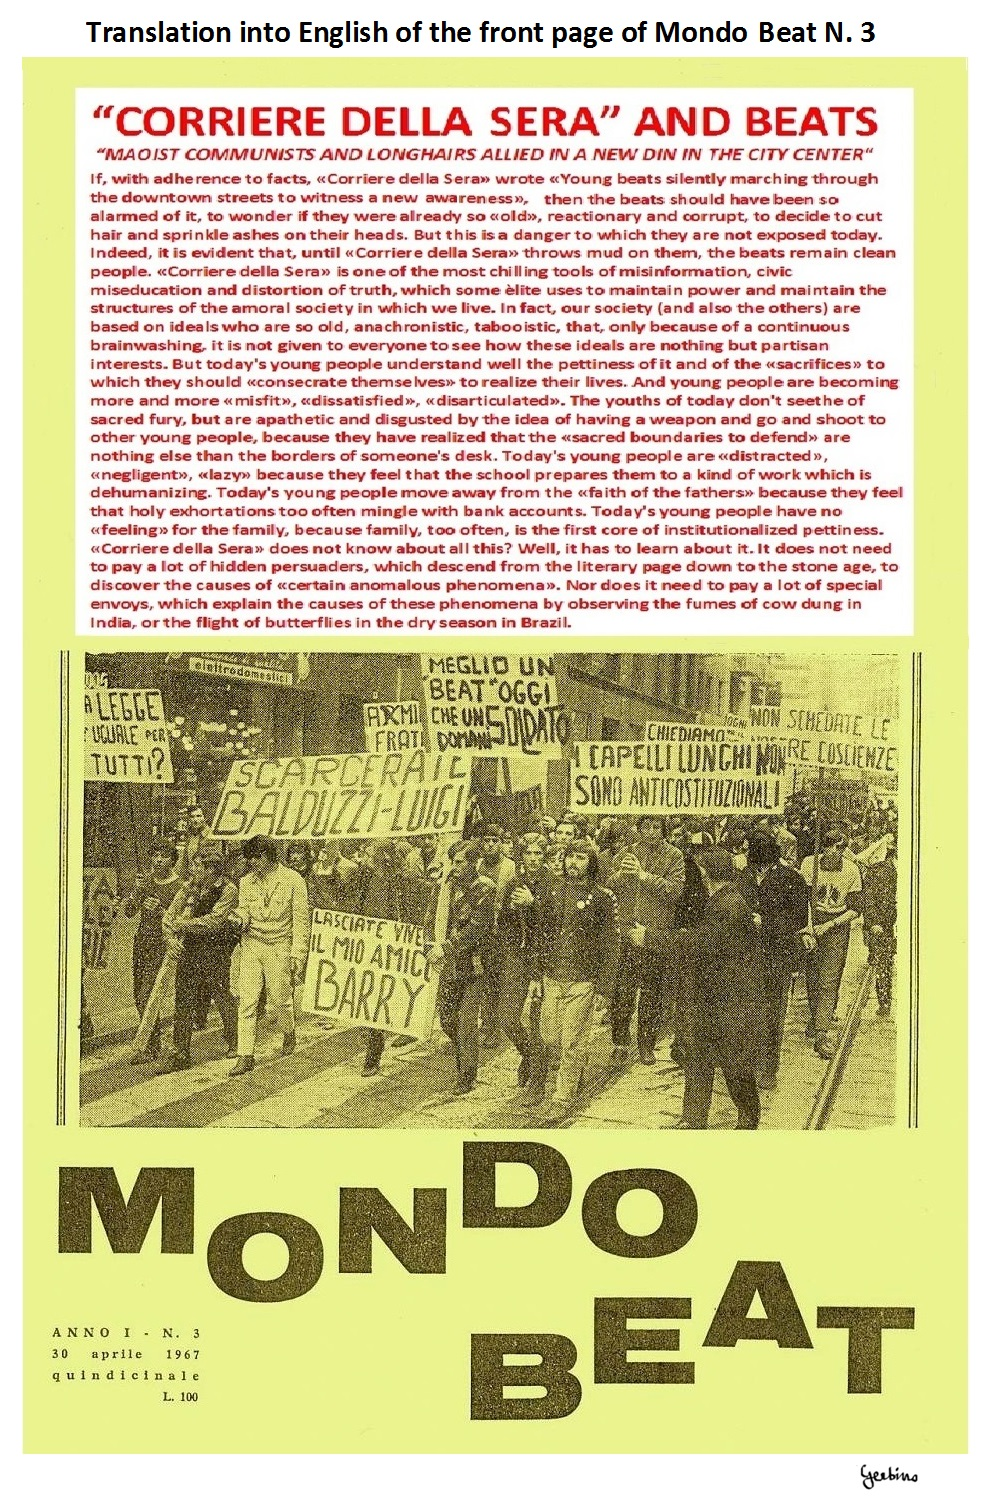 This cover marks the beginning of the clash at loggerheads between Mondo Beat and the Establishment media